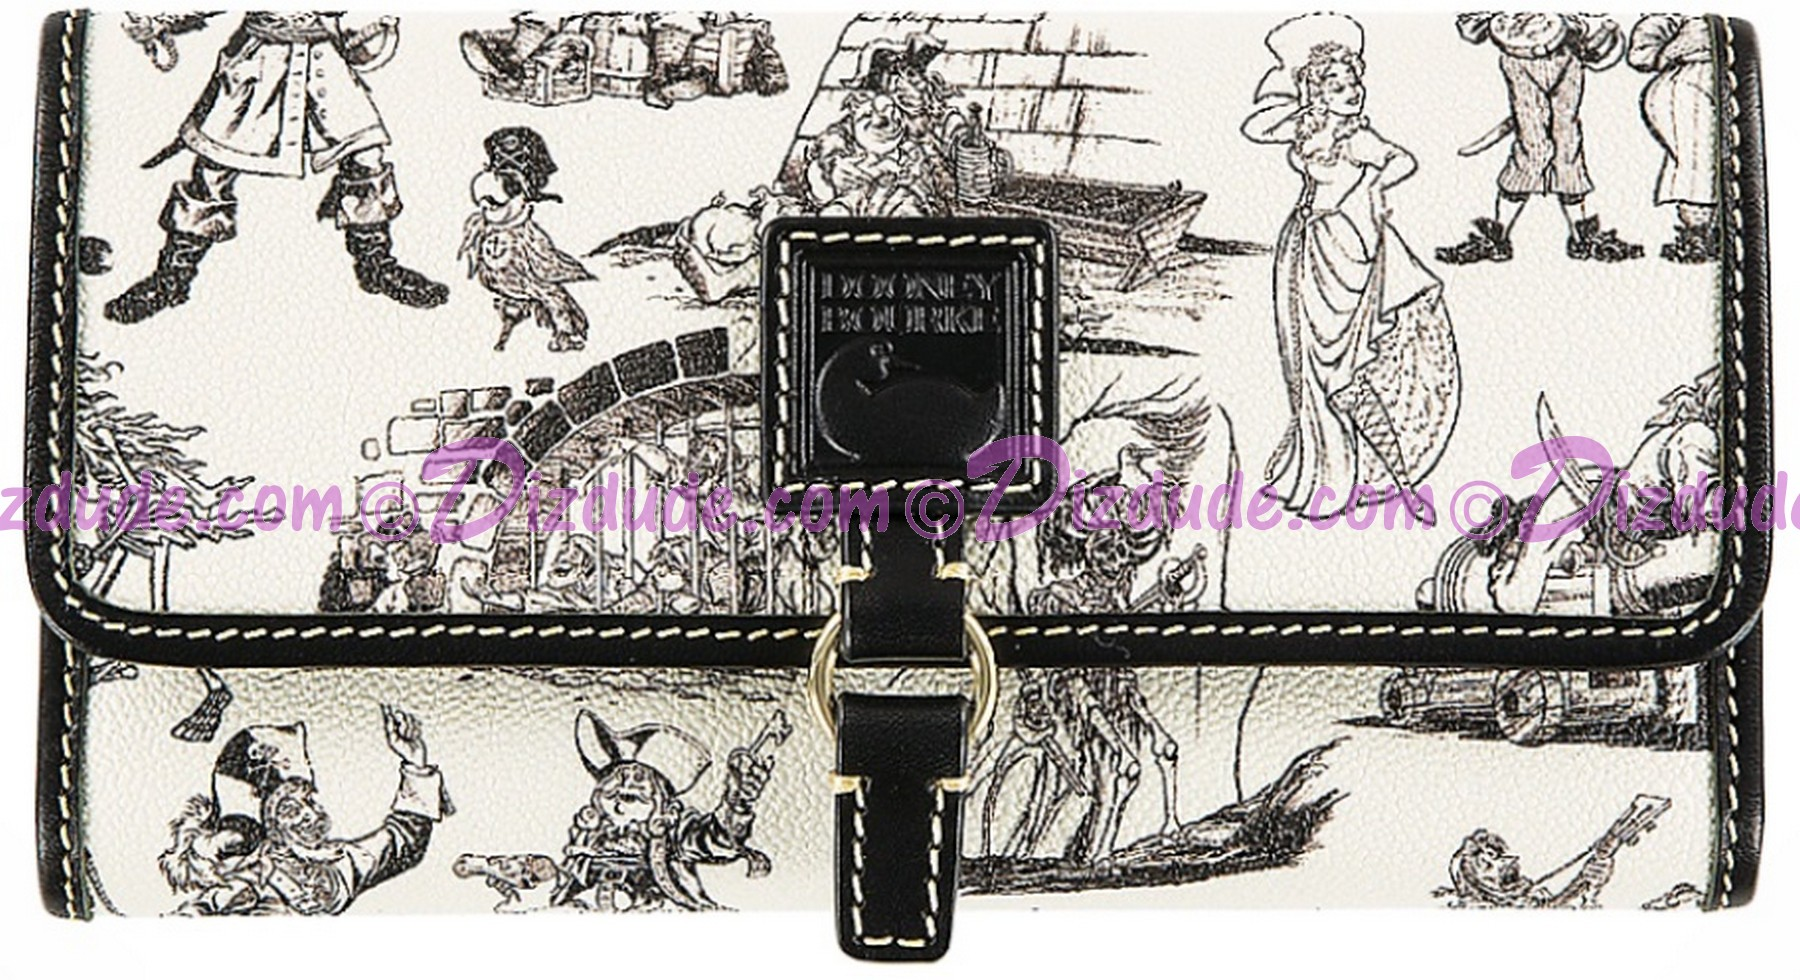 Dooney & Bourke Pirates of the Caribbean Checkbook Wallet - Disney World Exclusive © Dizdude.com